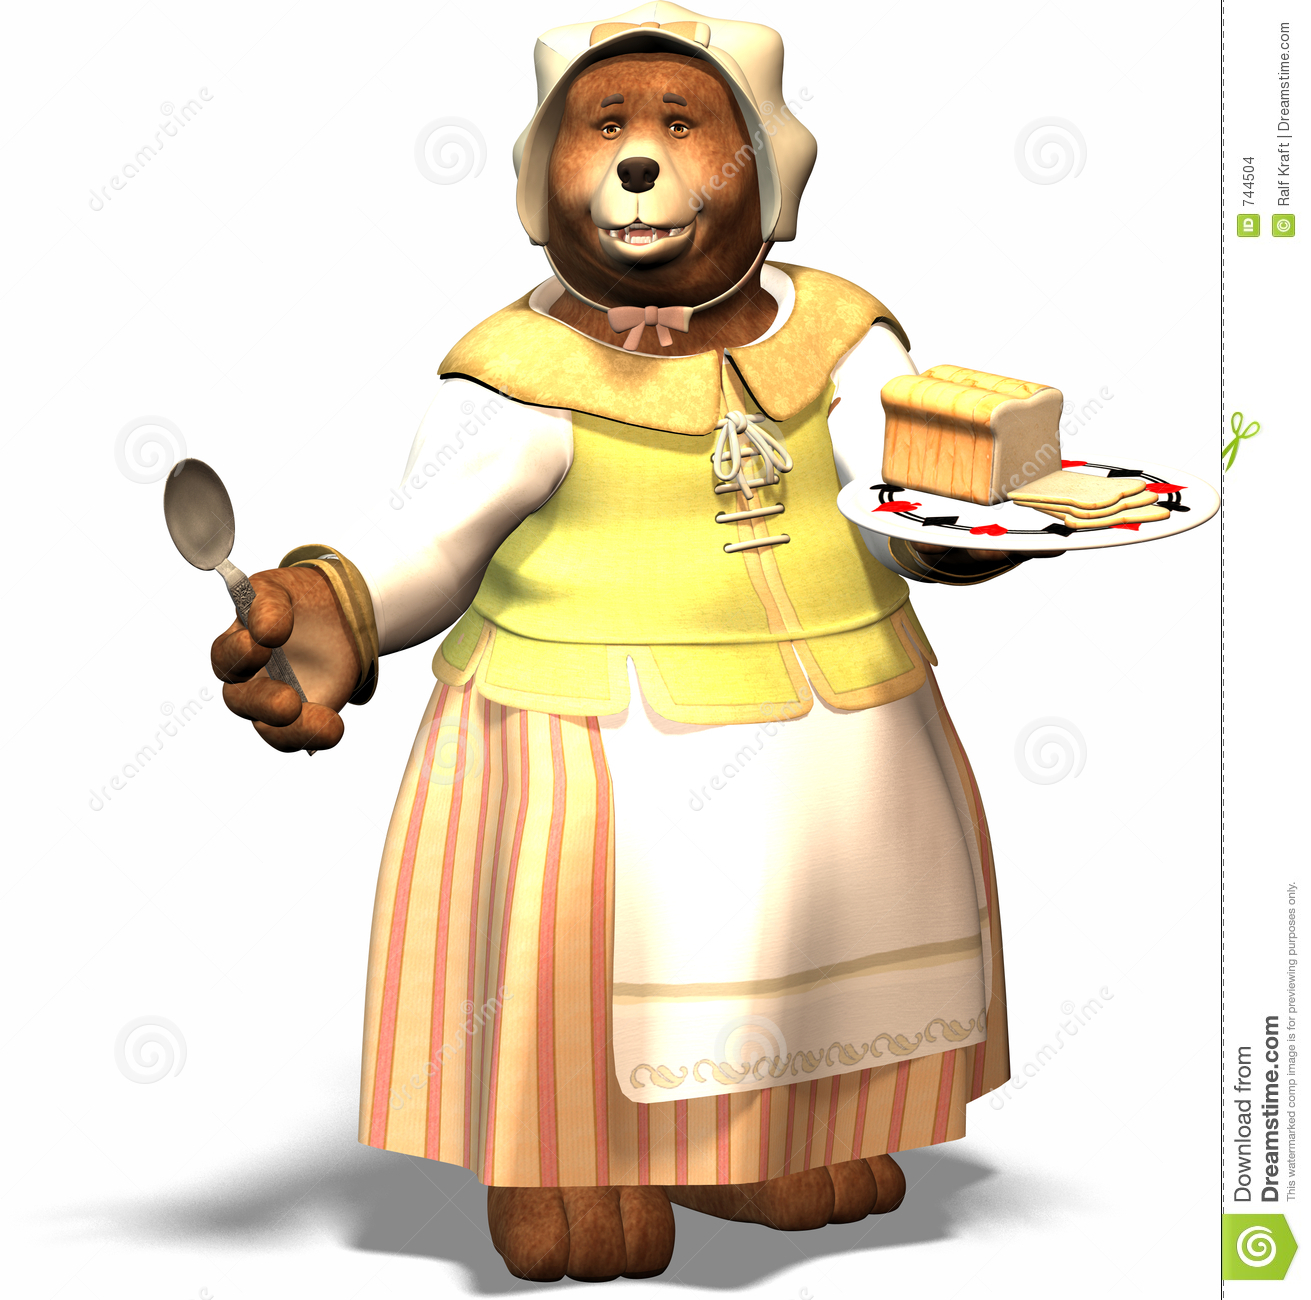 Mama bear clip art graphic library download Mama Bear Stock Illustrations – 106 Mama Bear Stock Illustrations ... graphic library download